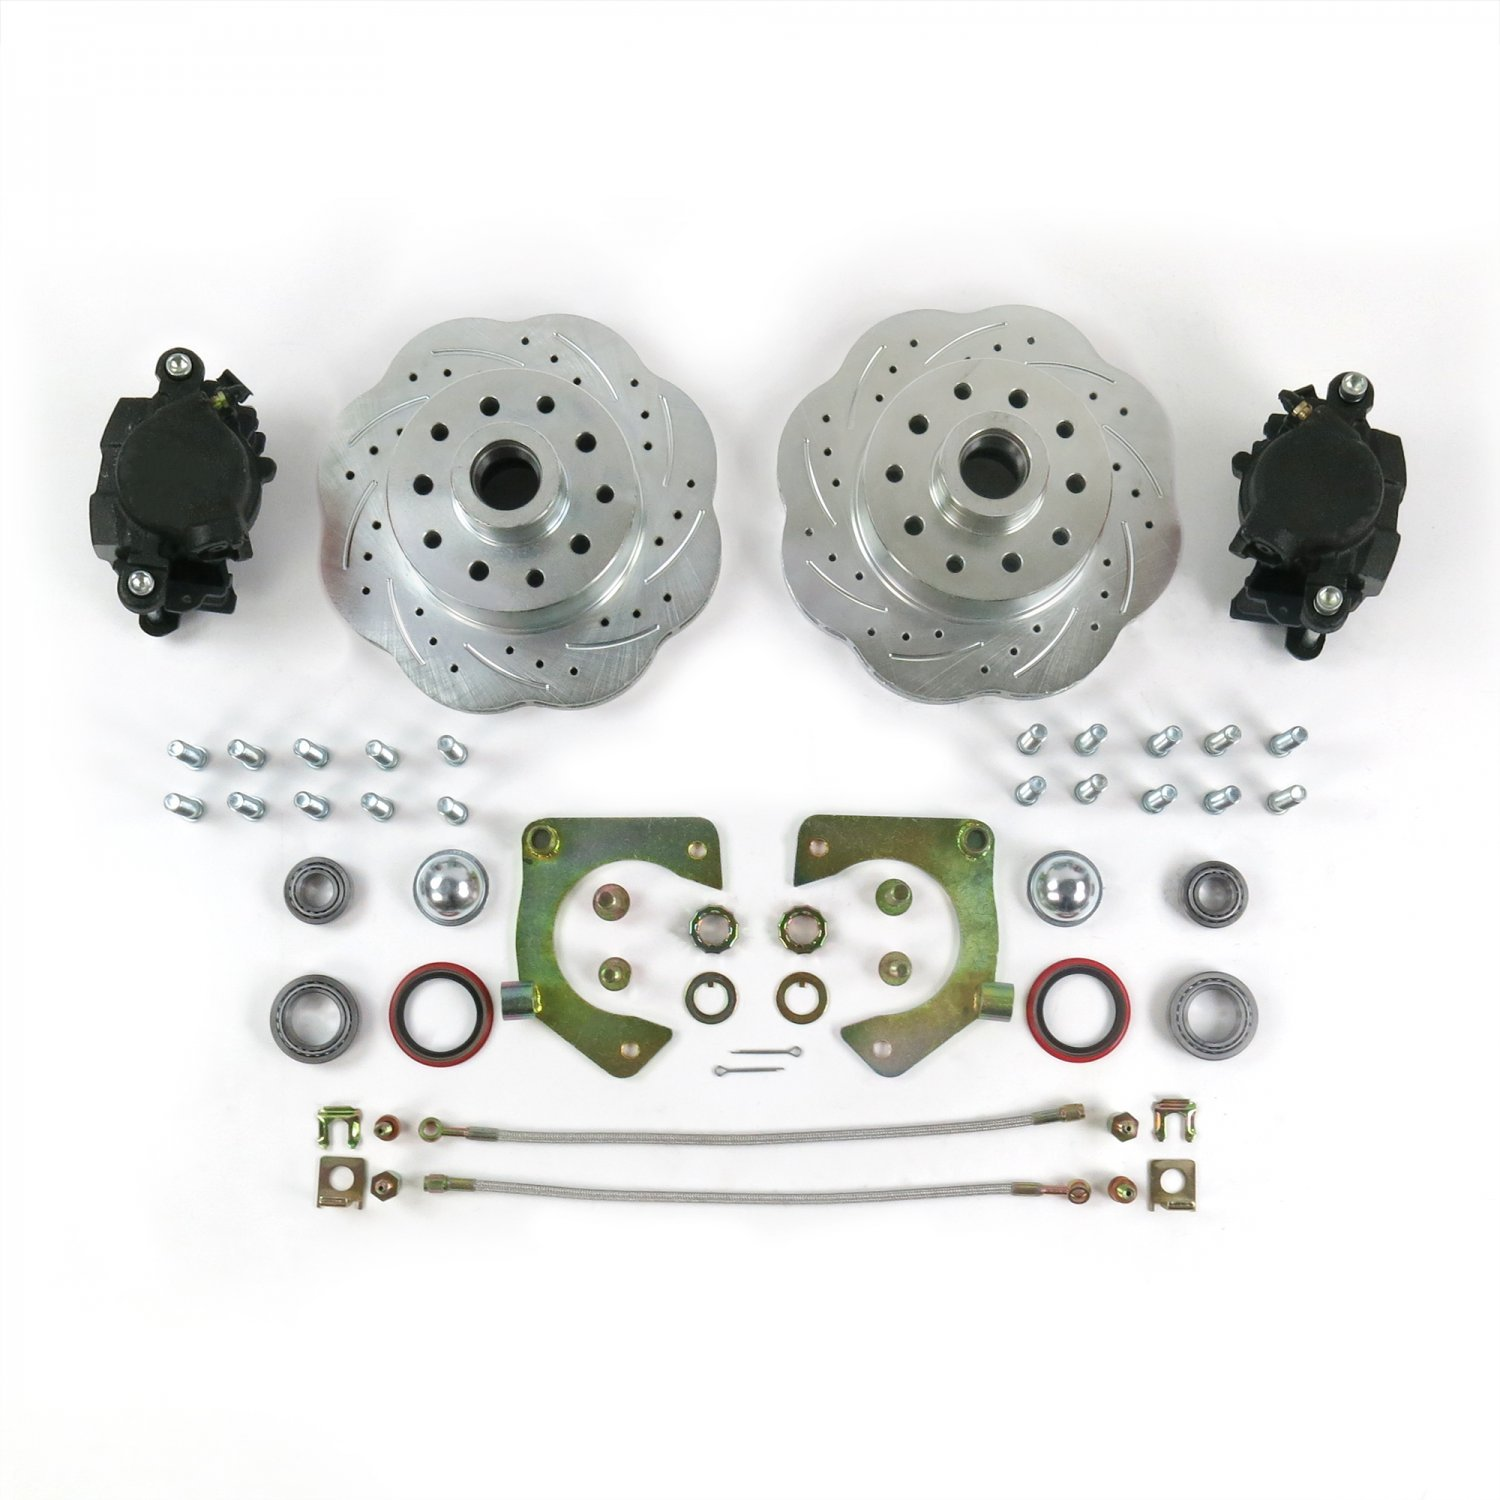 Mustang II Disc 2-Piece Spindle 11in Big Brake Conversion 5x4.5 Helix 729811 Triangulated 4-Link Kit